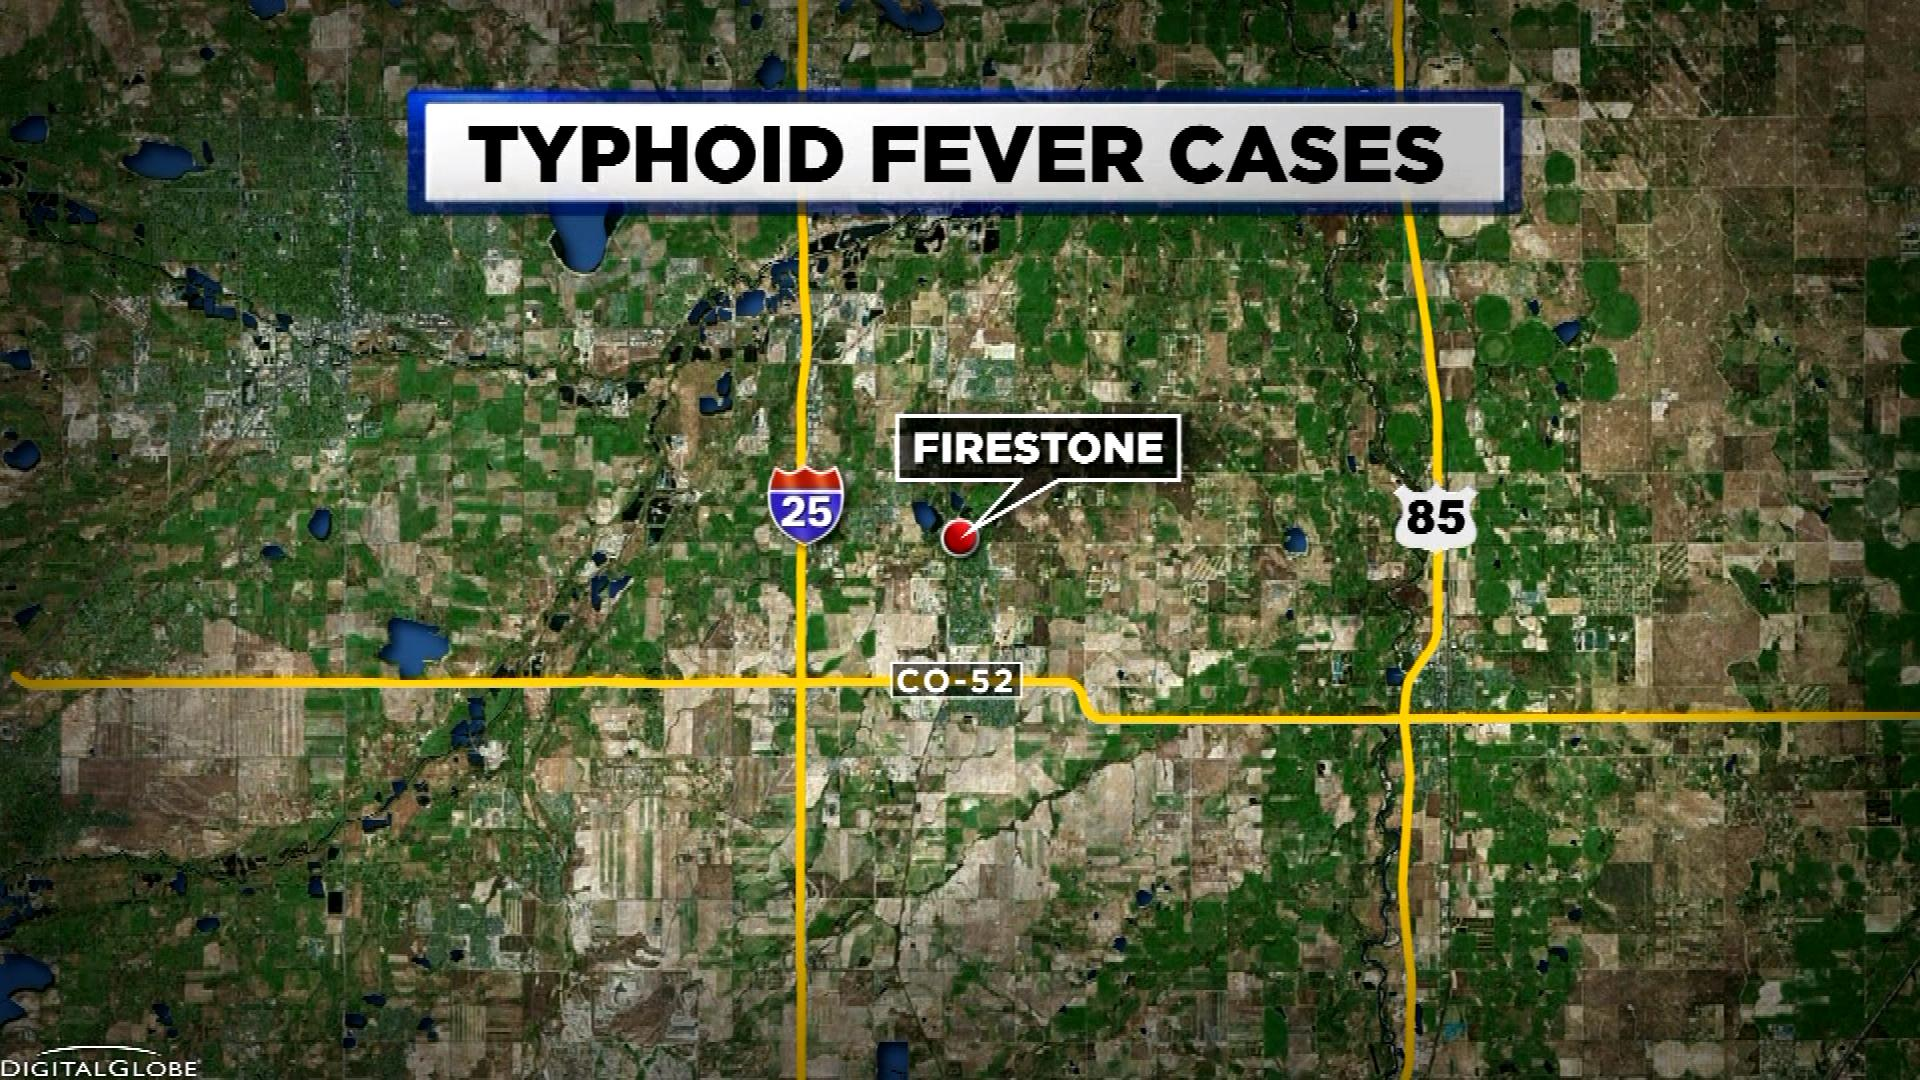 TYPHOID FEVER map